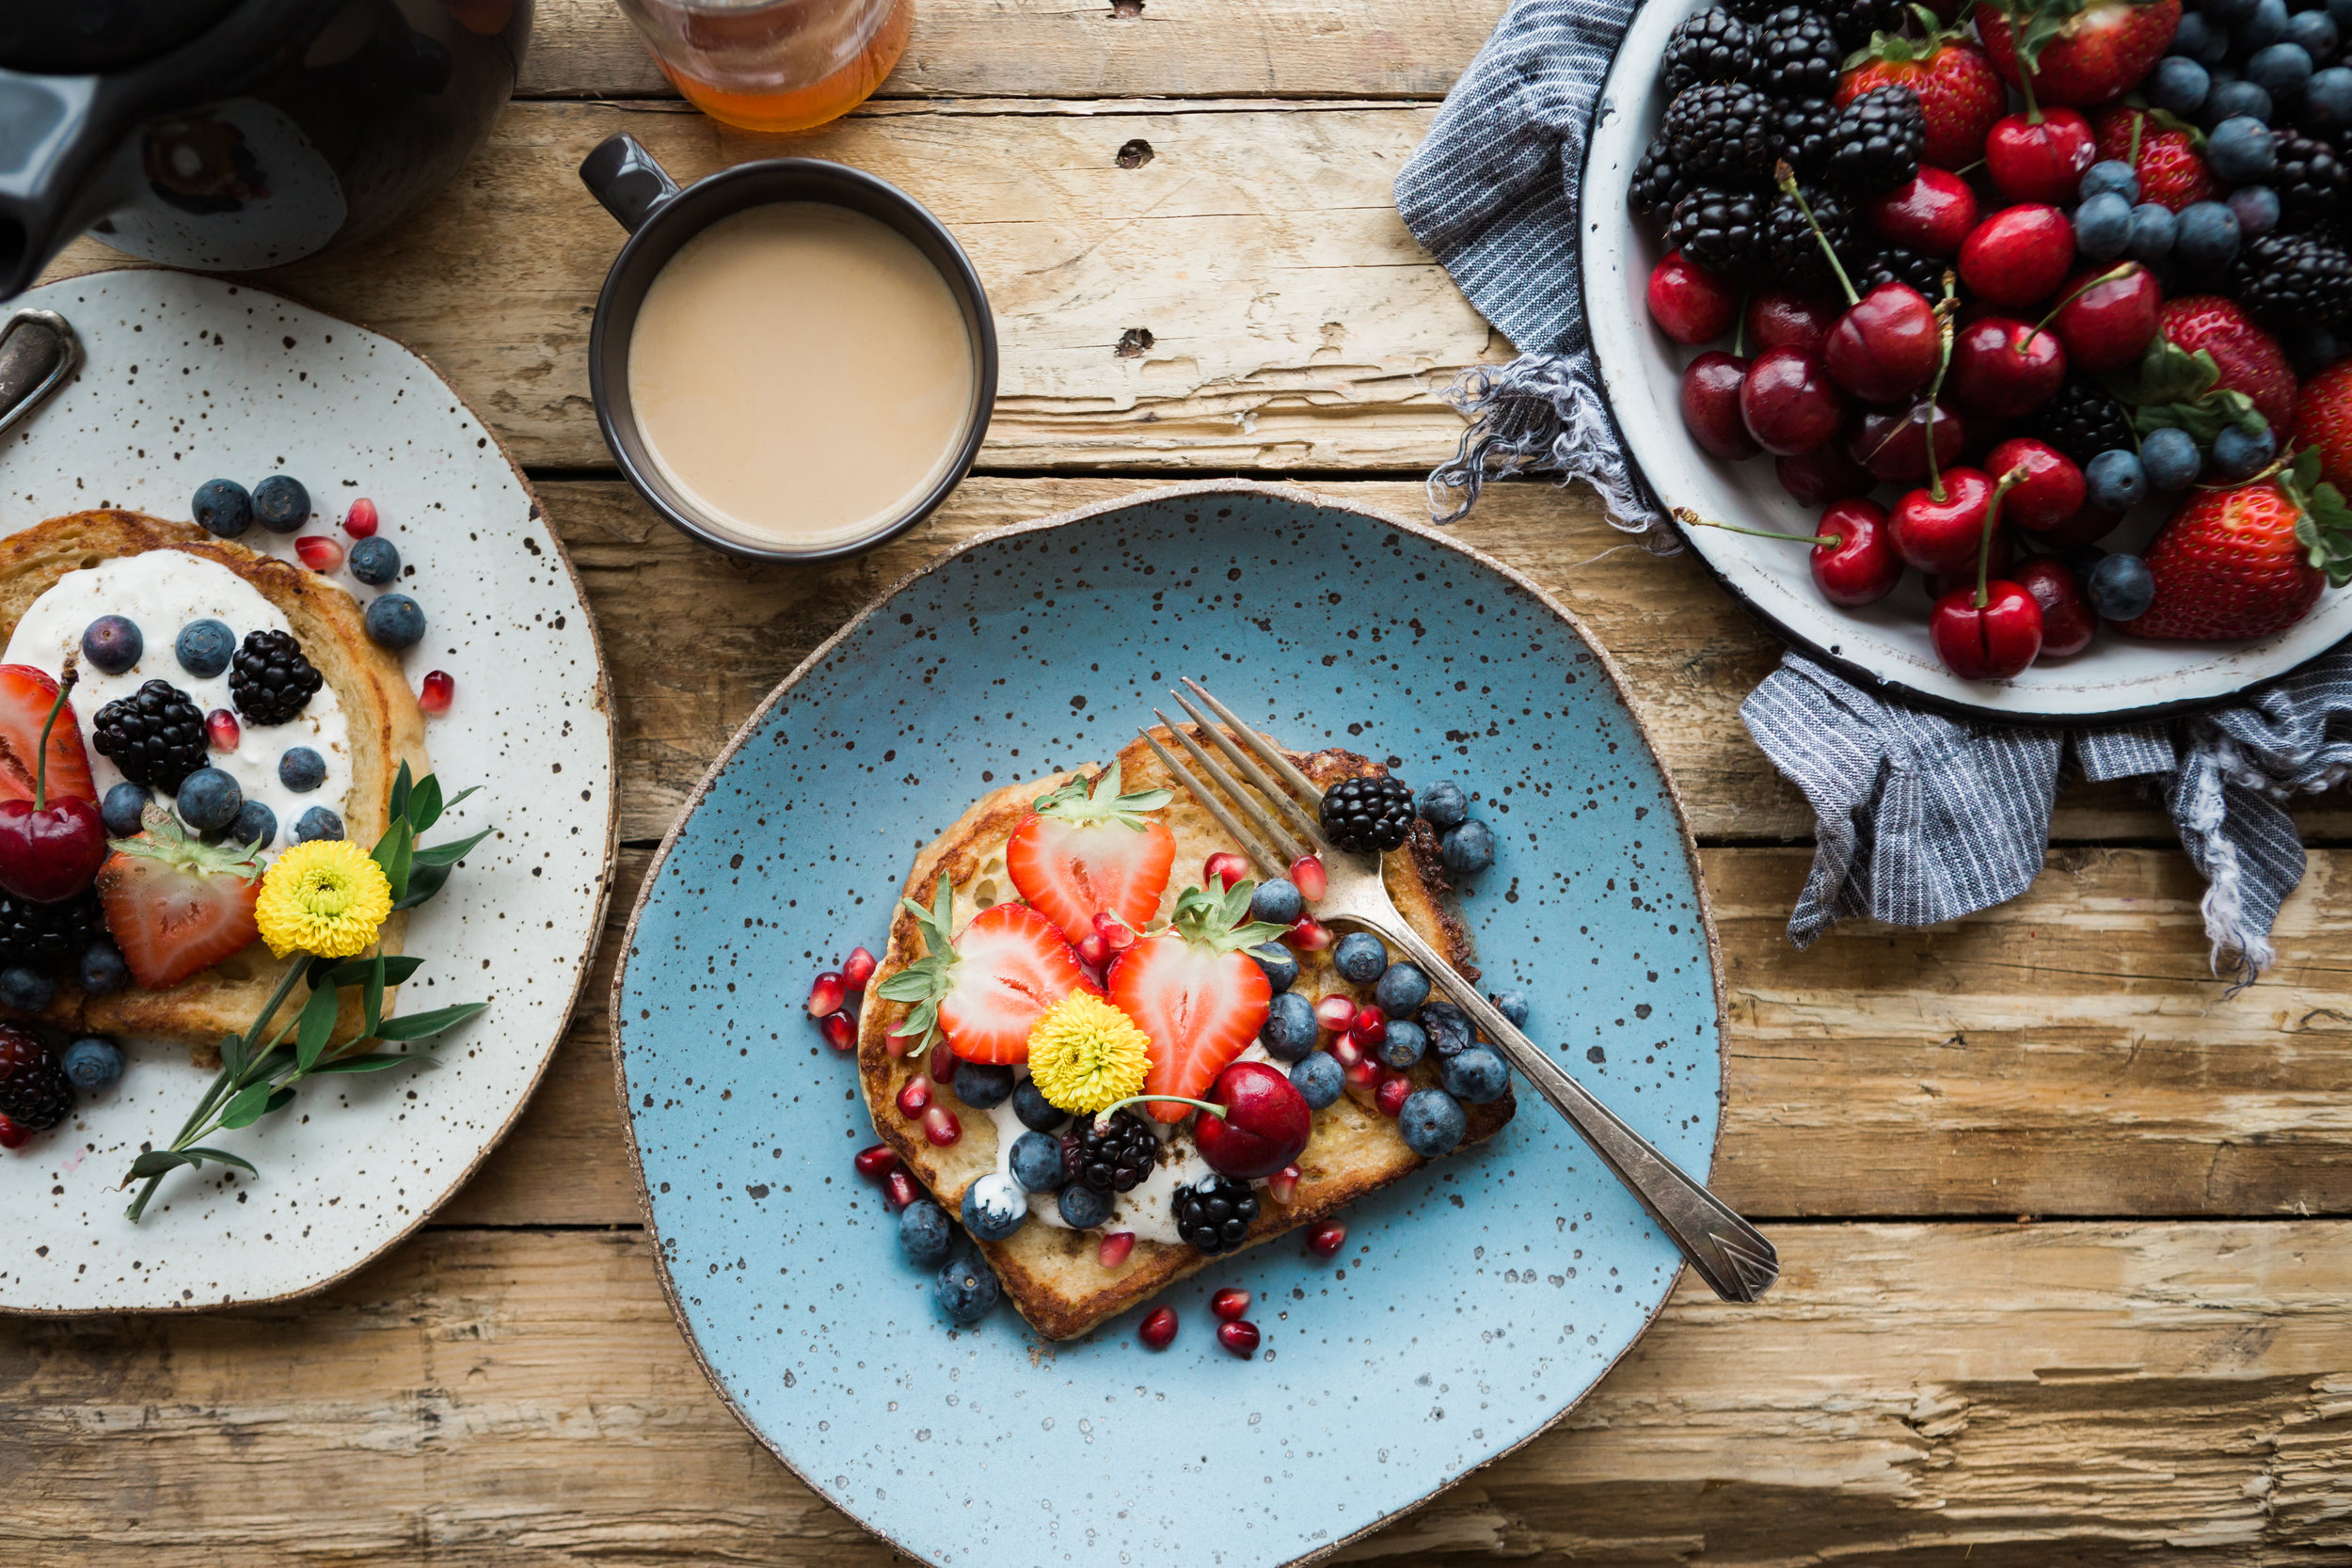 You'll discover your best healthy eating plan… - daily routine and fitness plan to level up your life! Options include Keto, Macro, Low Carb and Carb Cycling.